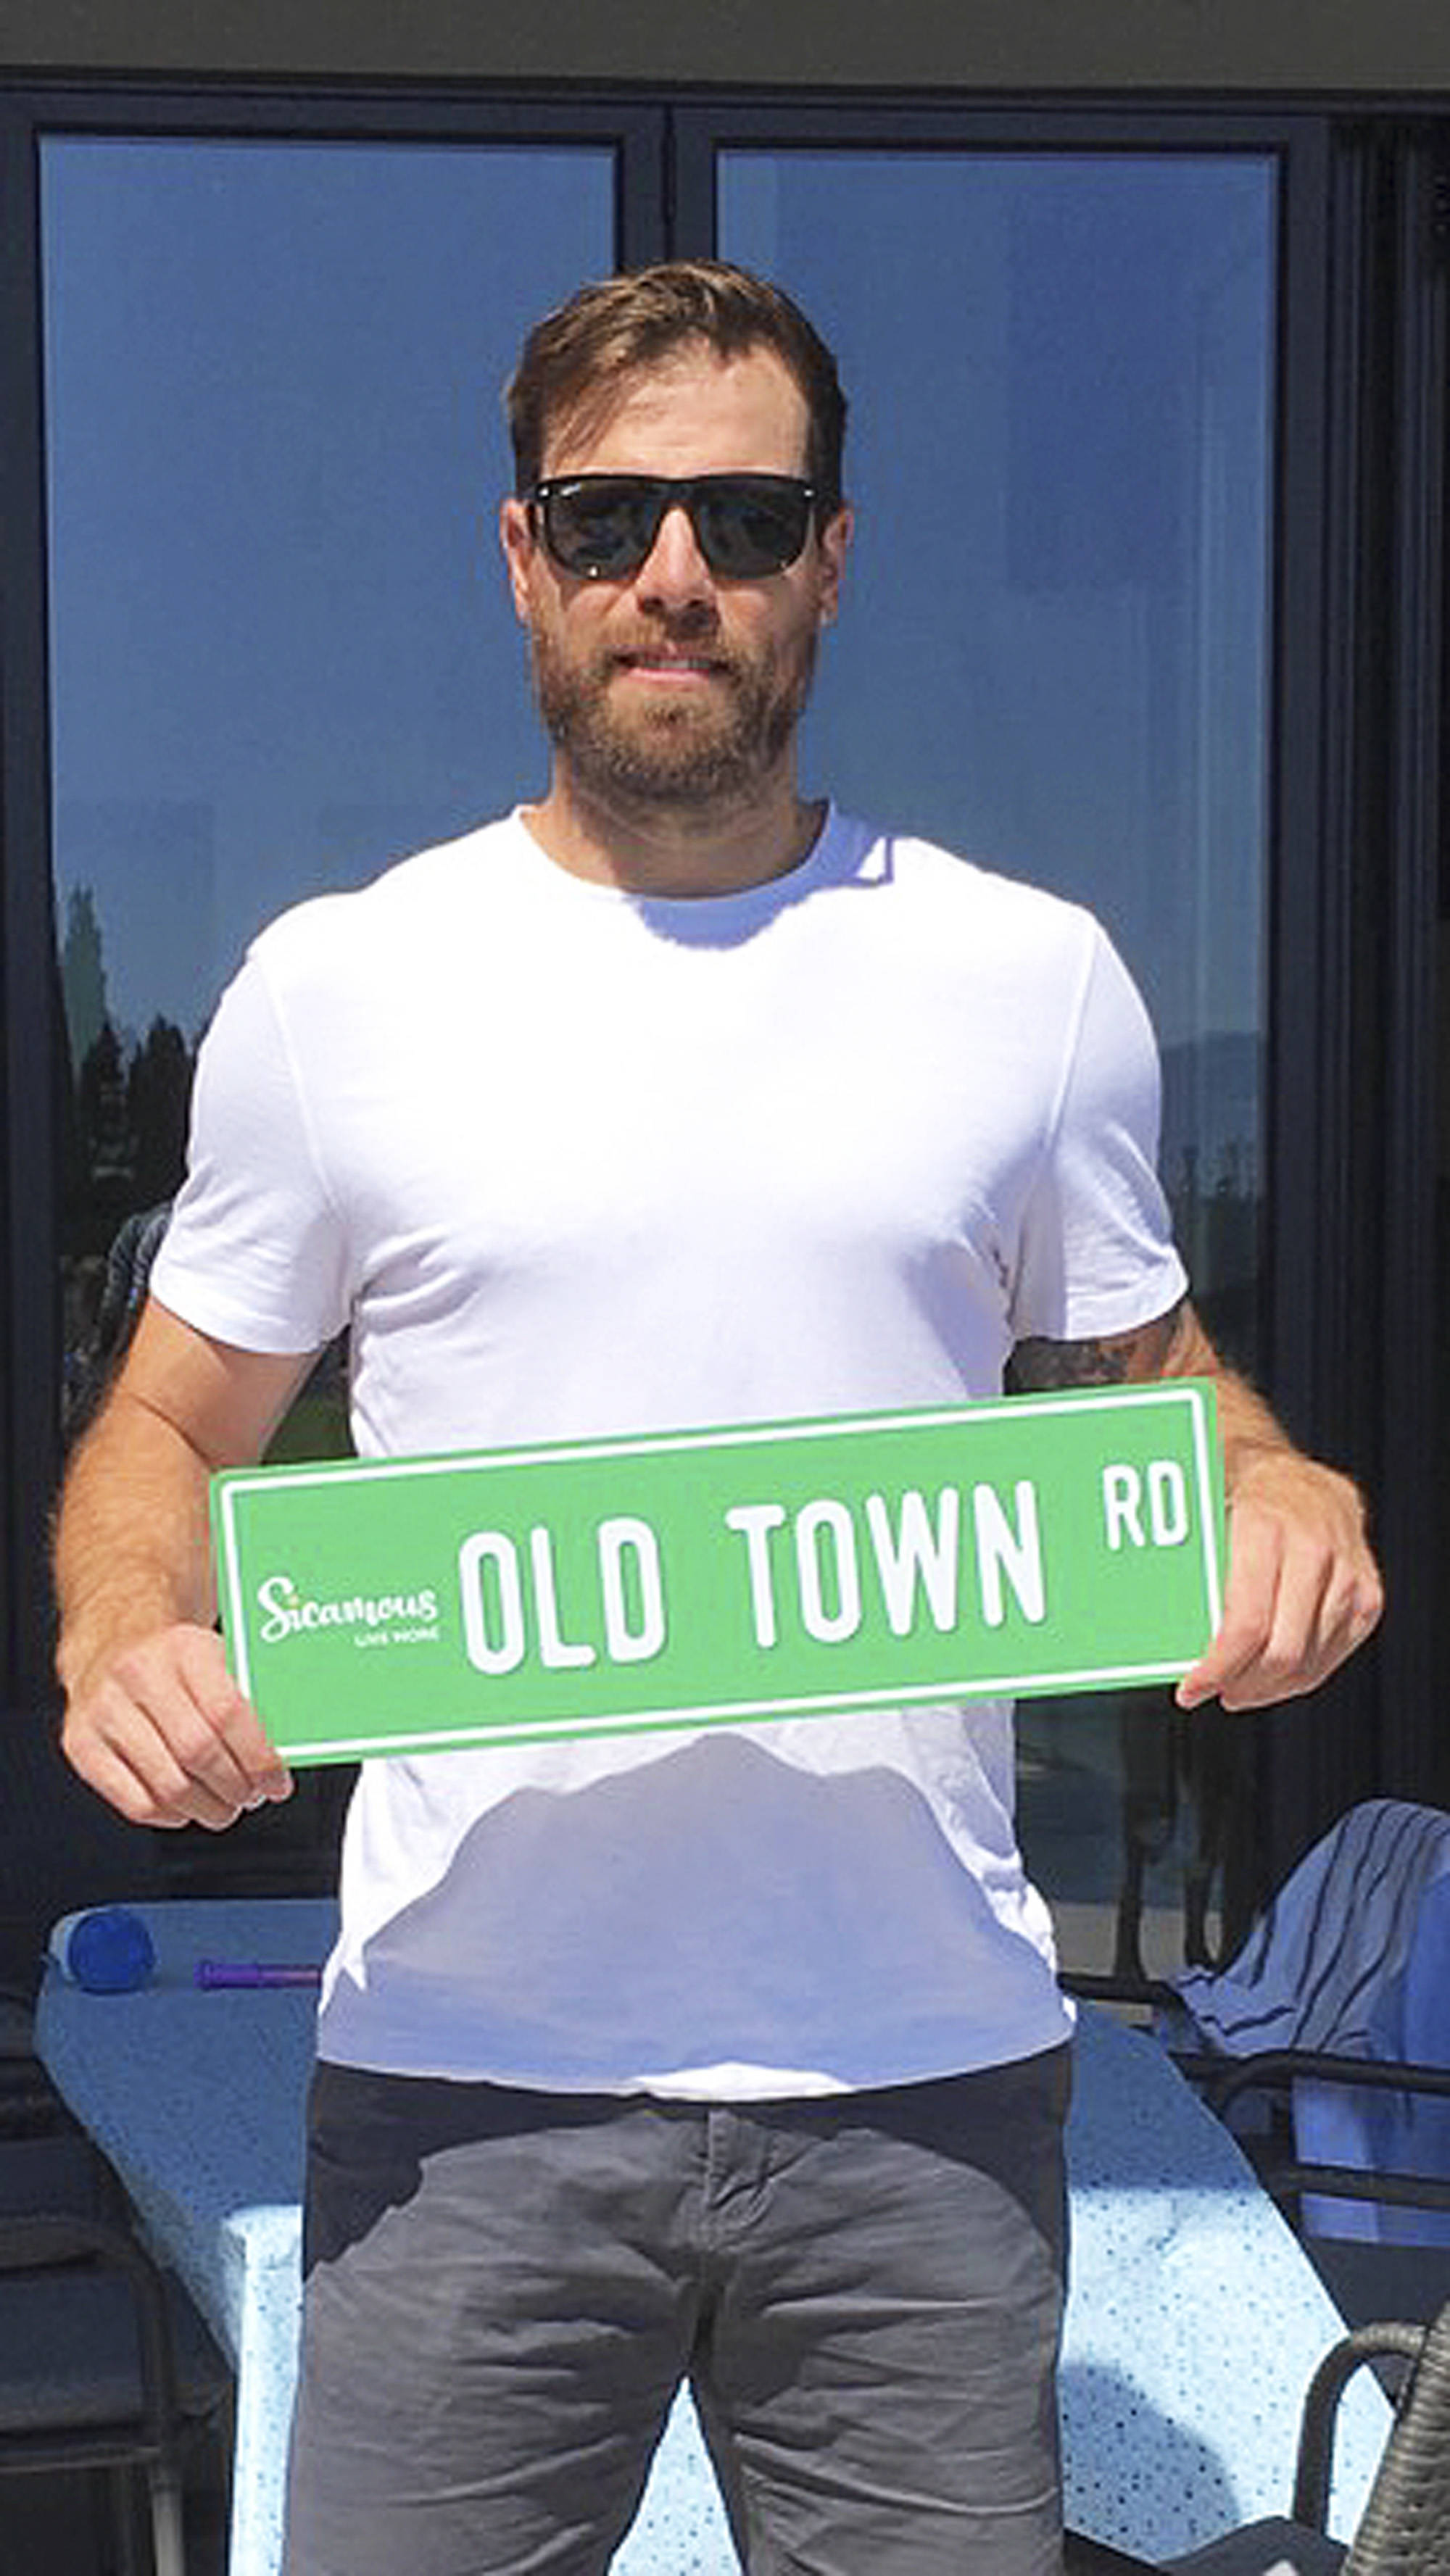 Sicamous native and NHL star Shea Weber received a new wall hanging from the district – one of the novelty Old Town Road signs being sold by the Sicamous and District Chamber of Commerce. (Photo submitted)